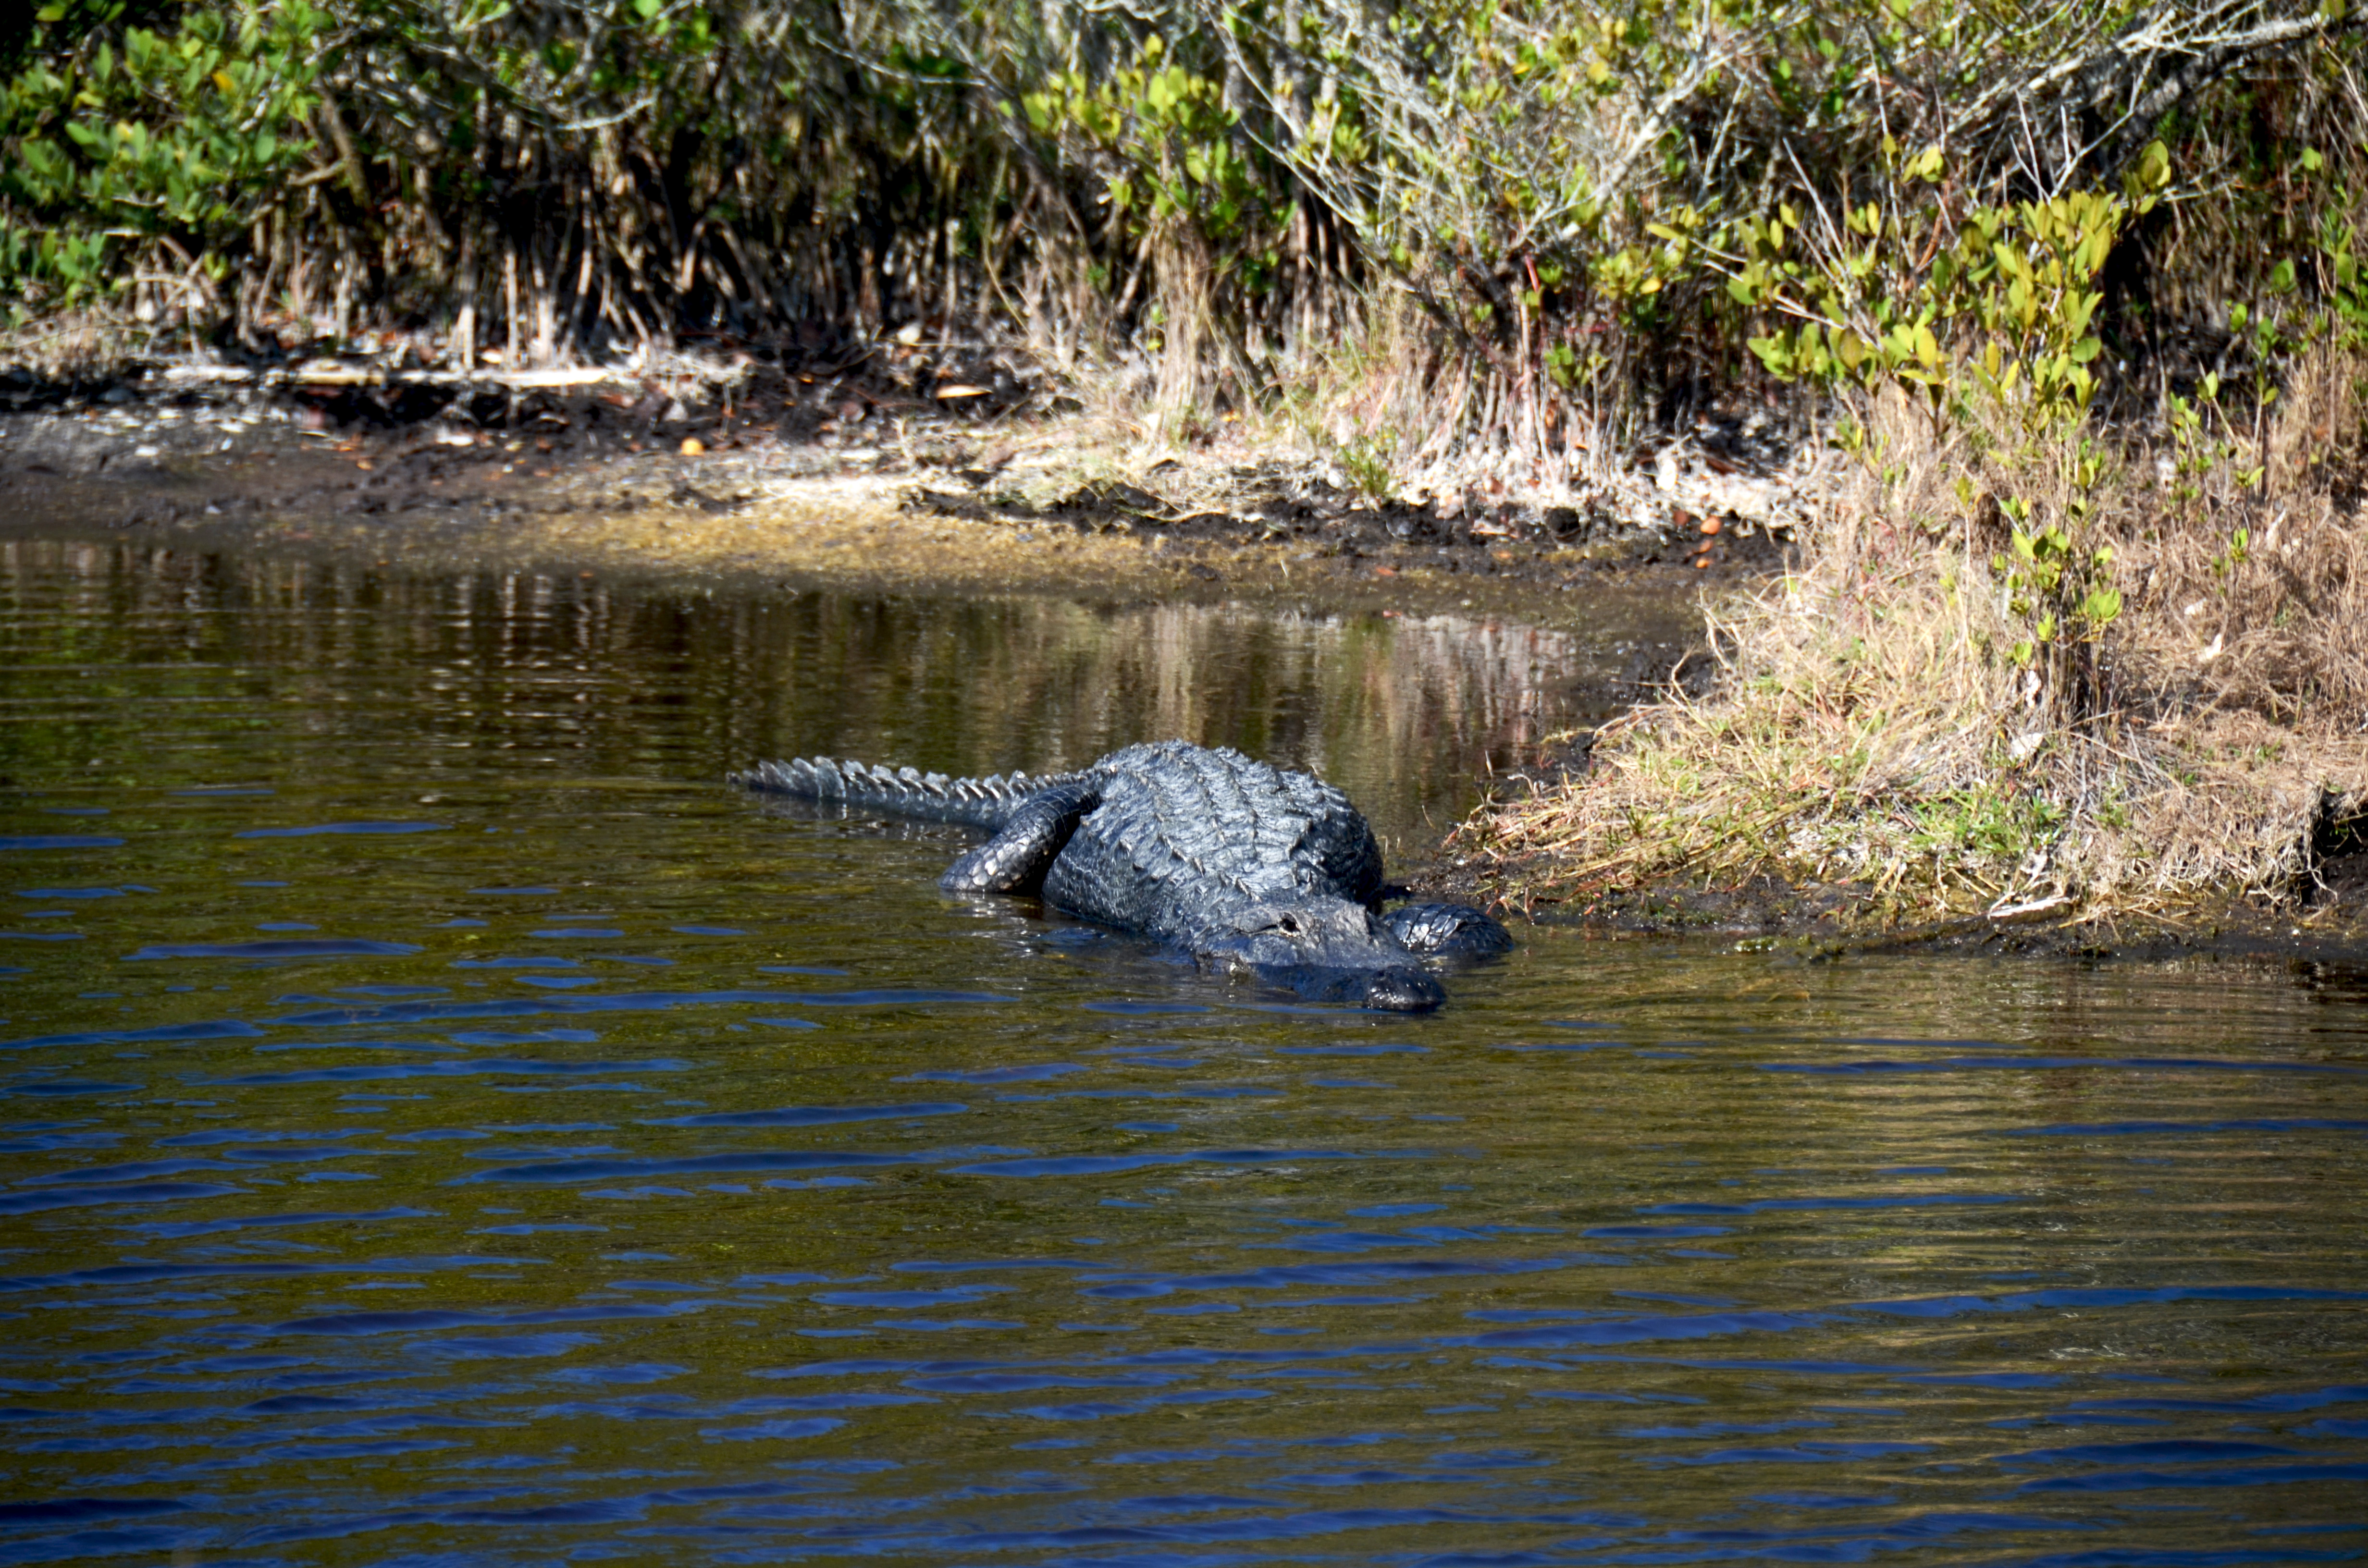 Many say no animal better represents Florida than the American alligator. They are one of the main attractions at the Canaveral National Seashore.